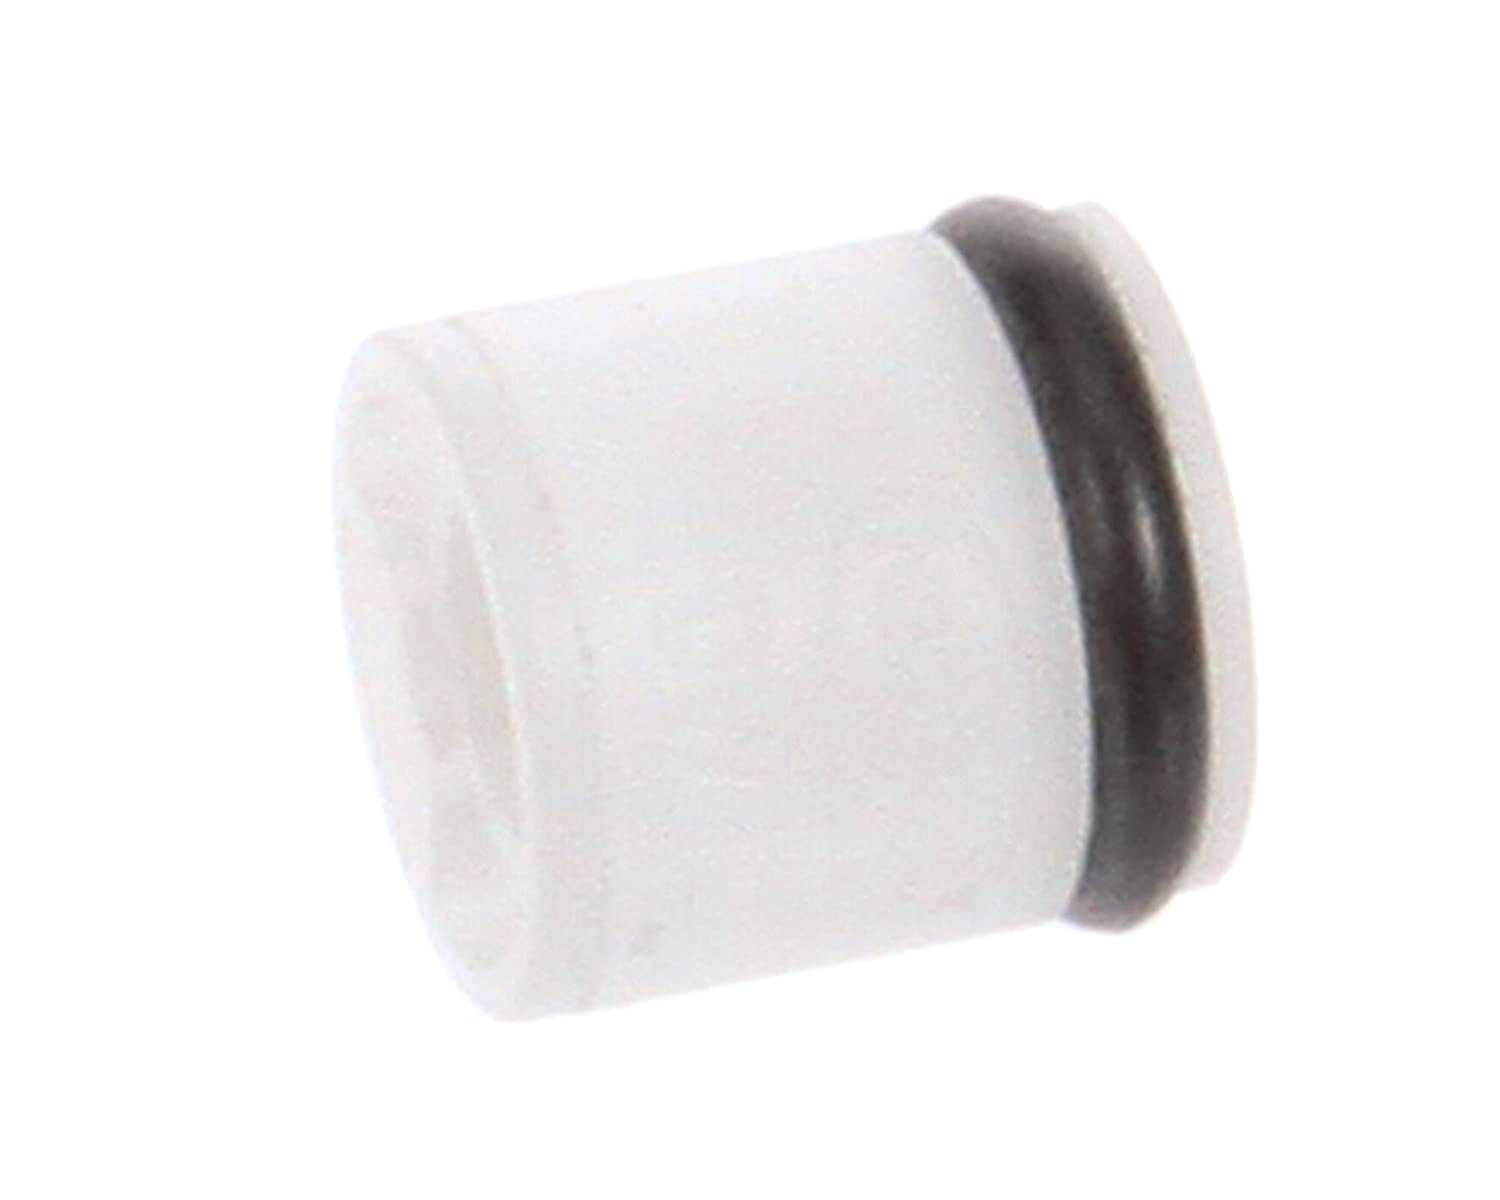 Bunn 36378.0001 Check Valve for Hot Beverage Dispensers, Coffee and Iced Tea Brewers